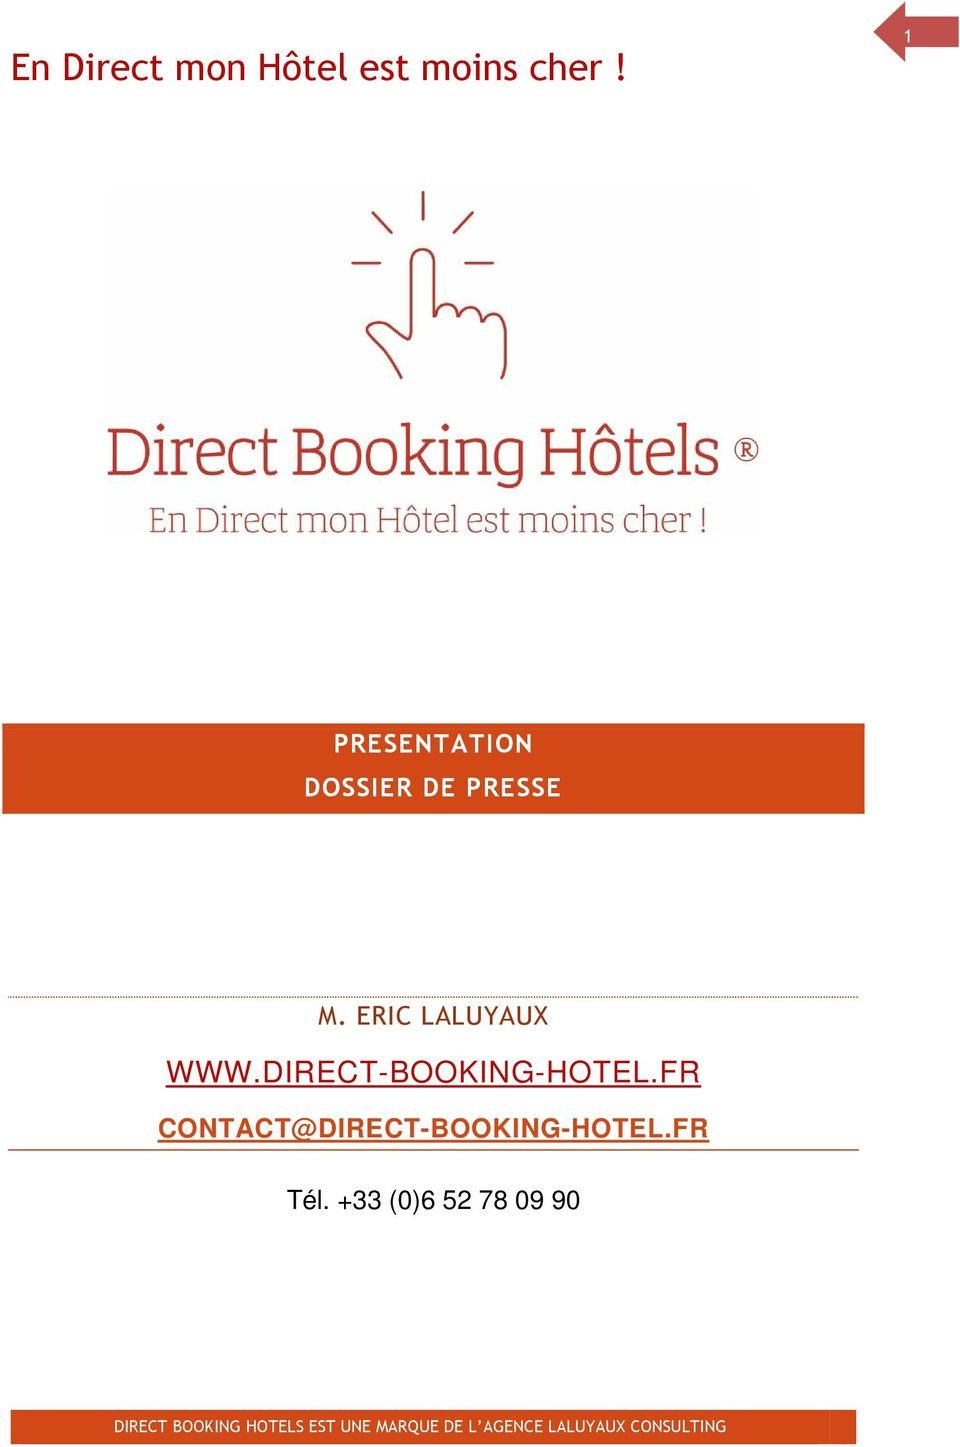 DIRECT-BOOKING-HOTEL.